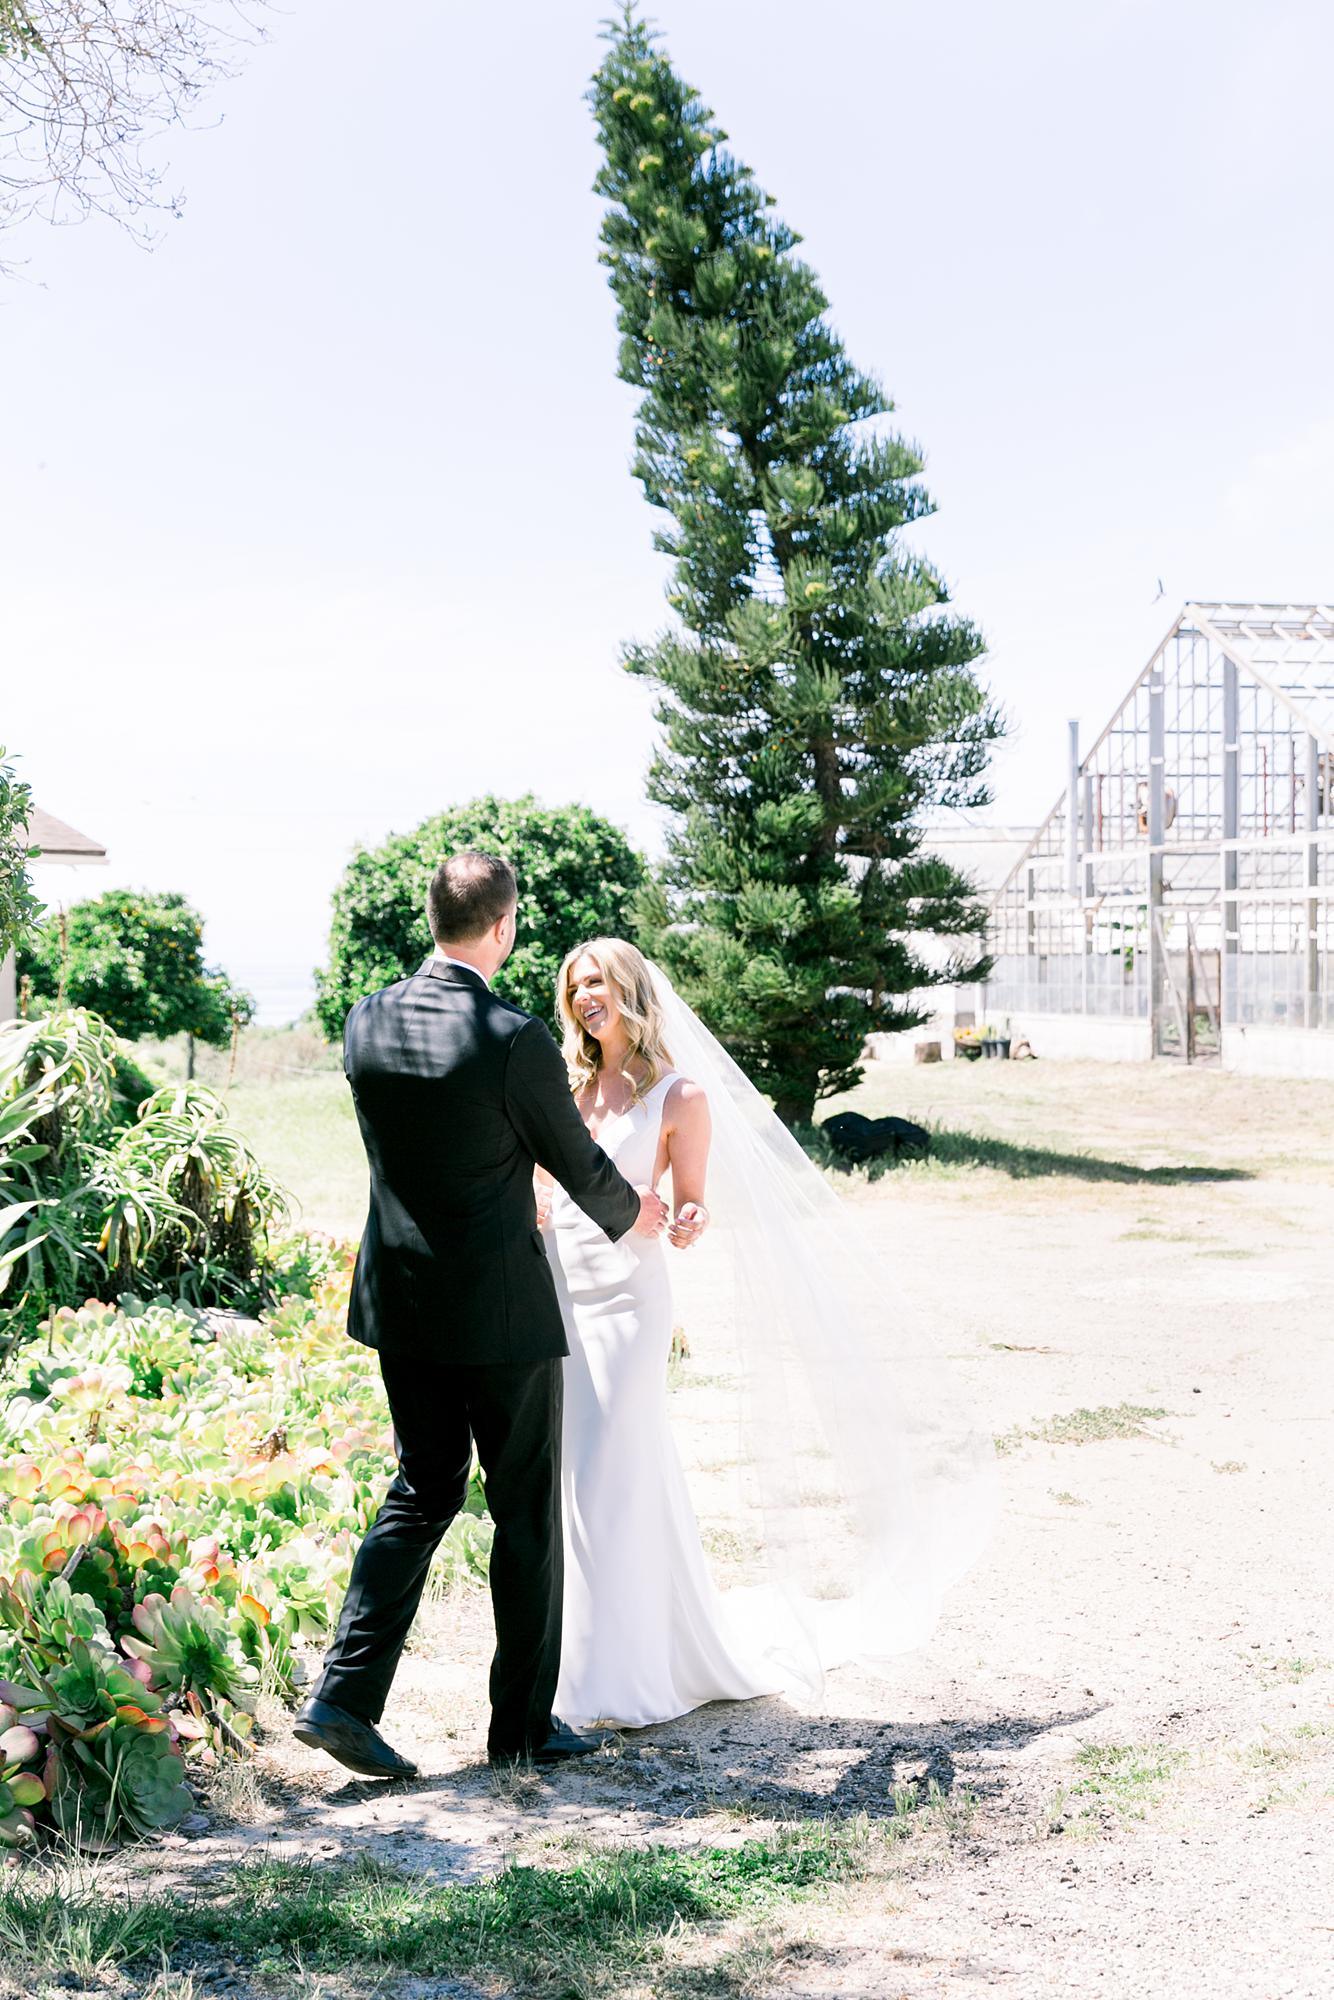 Orchid Farm Santa Barbara Wedding | Miki & Sonja Photography | mikiandsonja.com